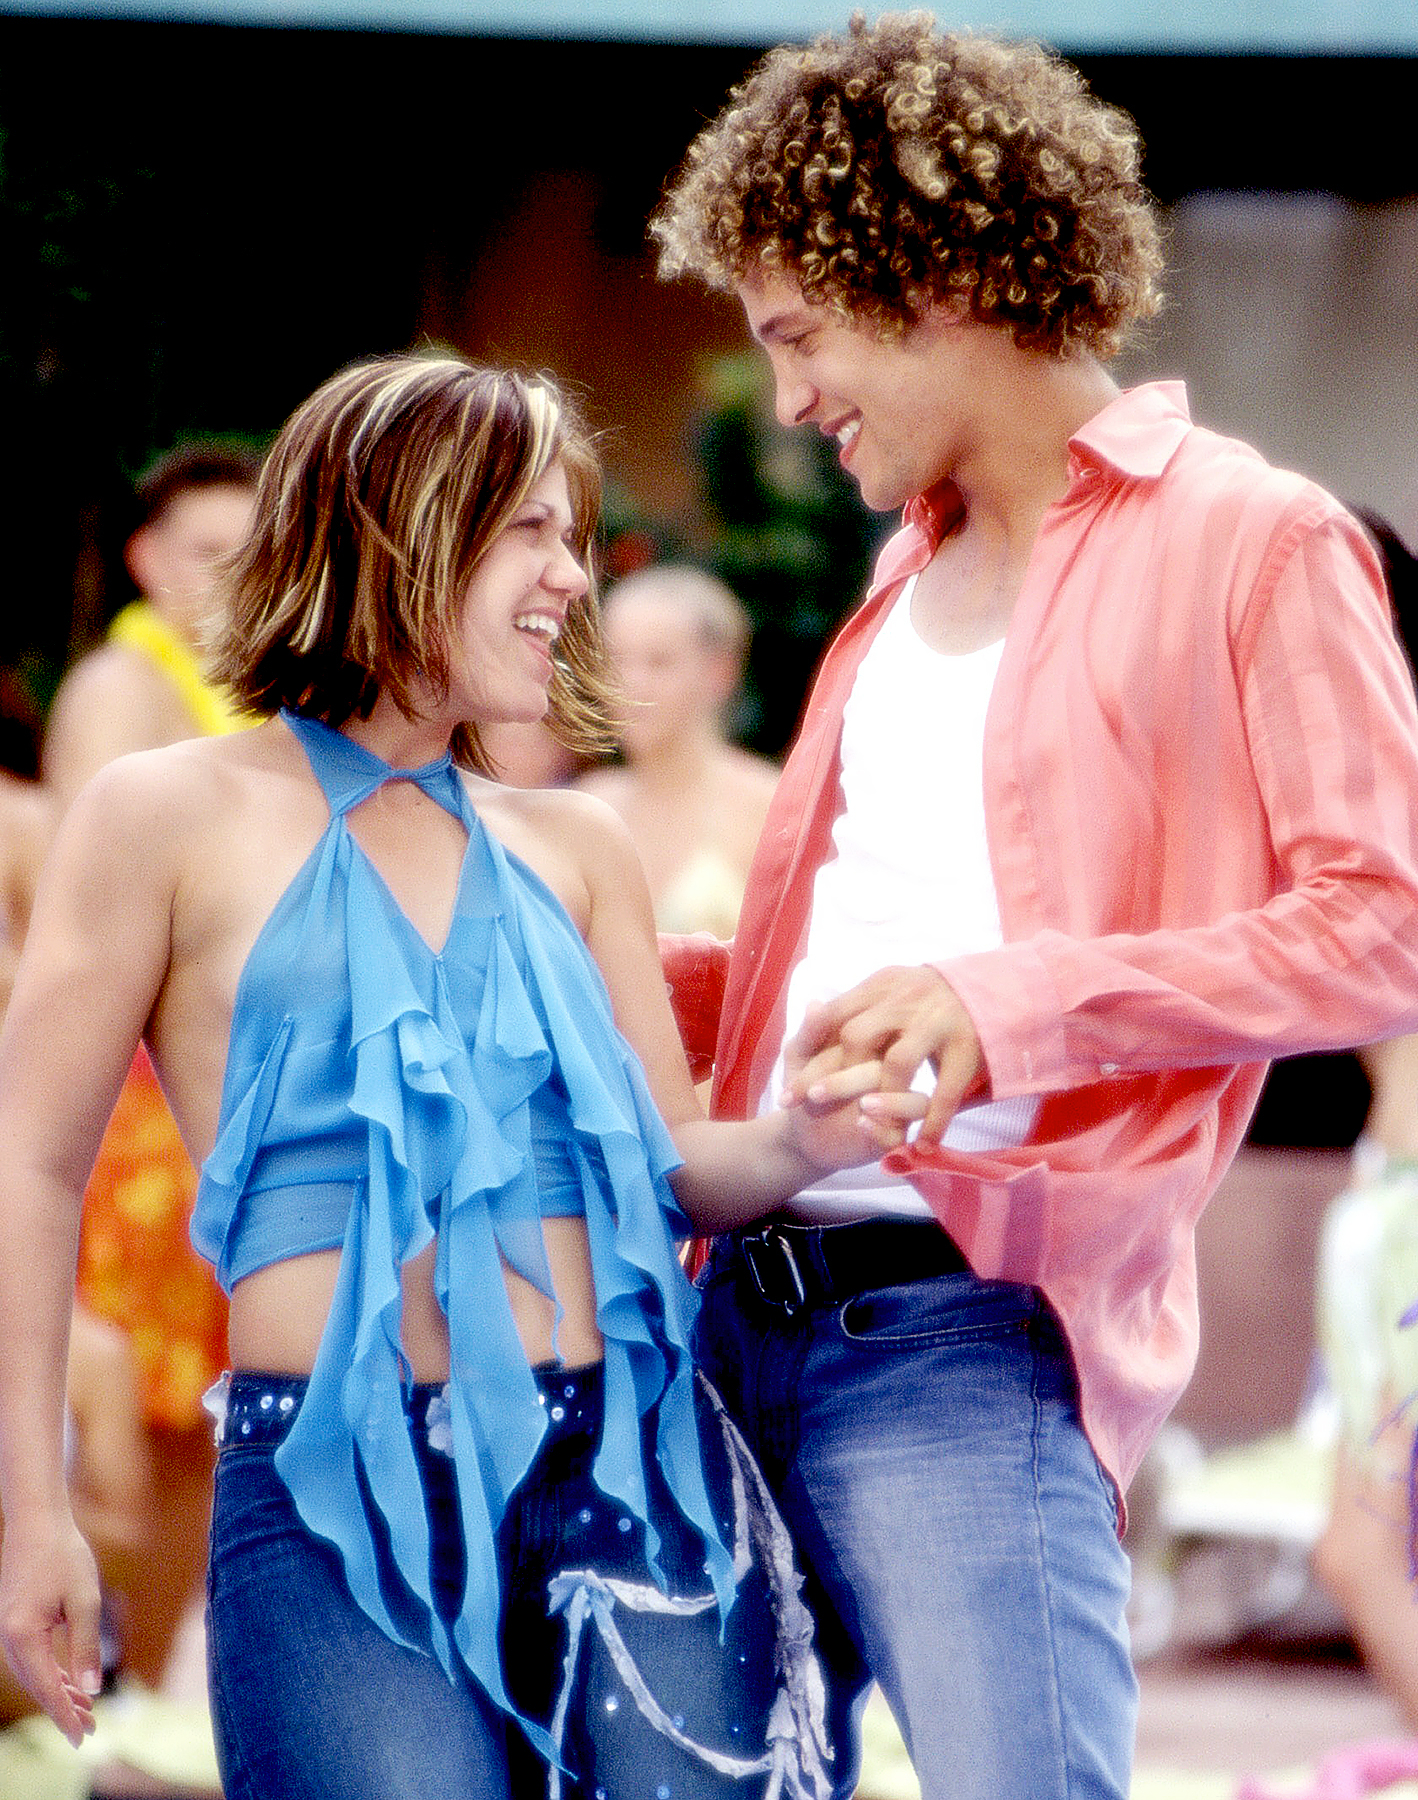 Kelly Clarkson and Justin Guarini in 2003's From Justin to Kelly.